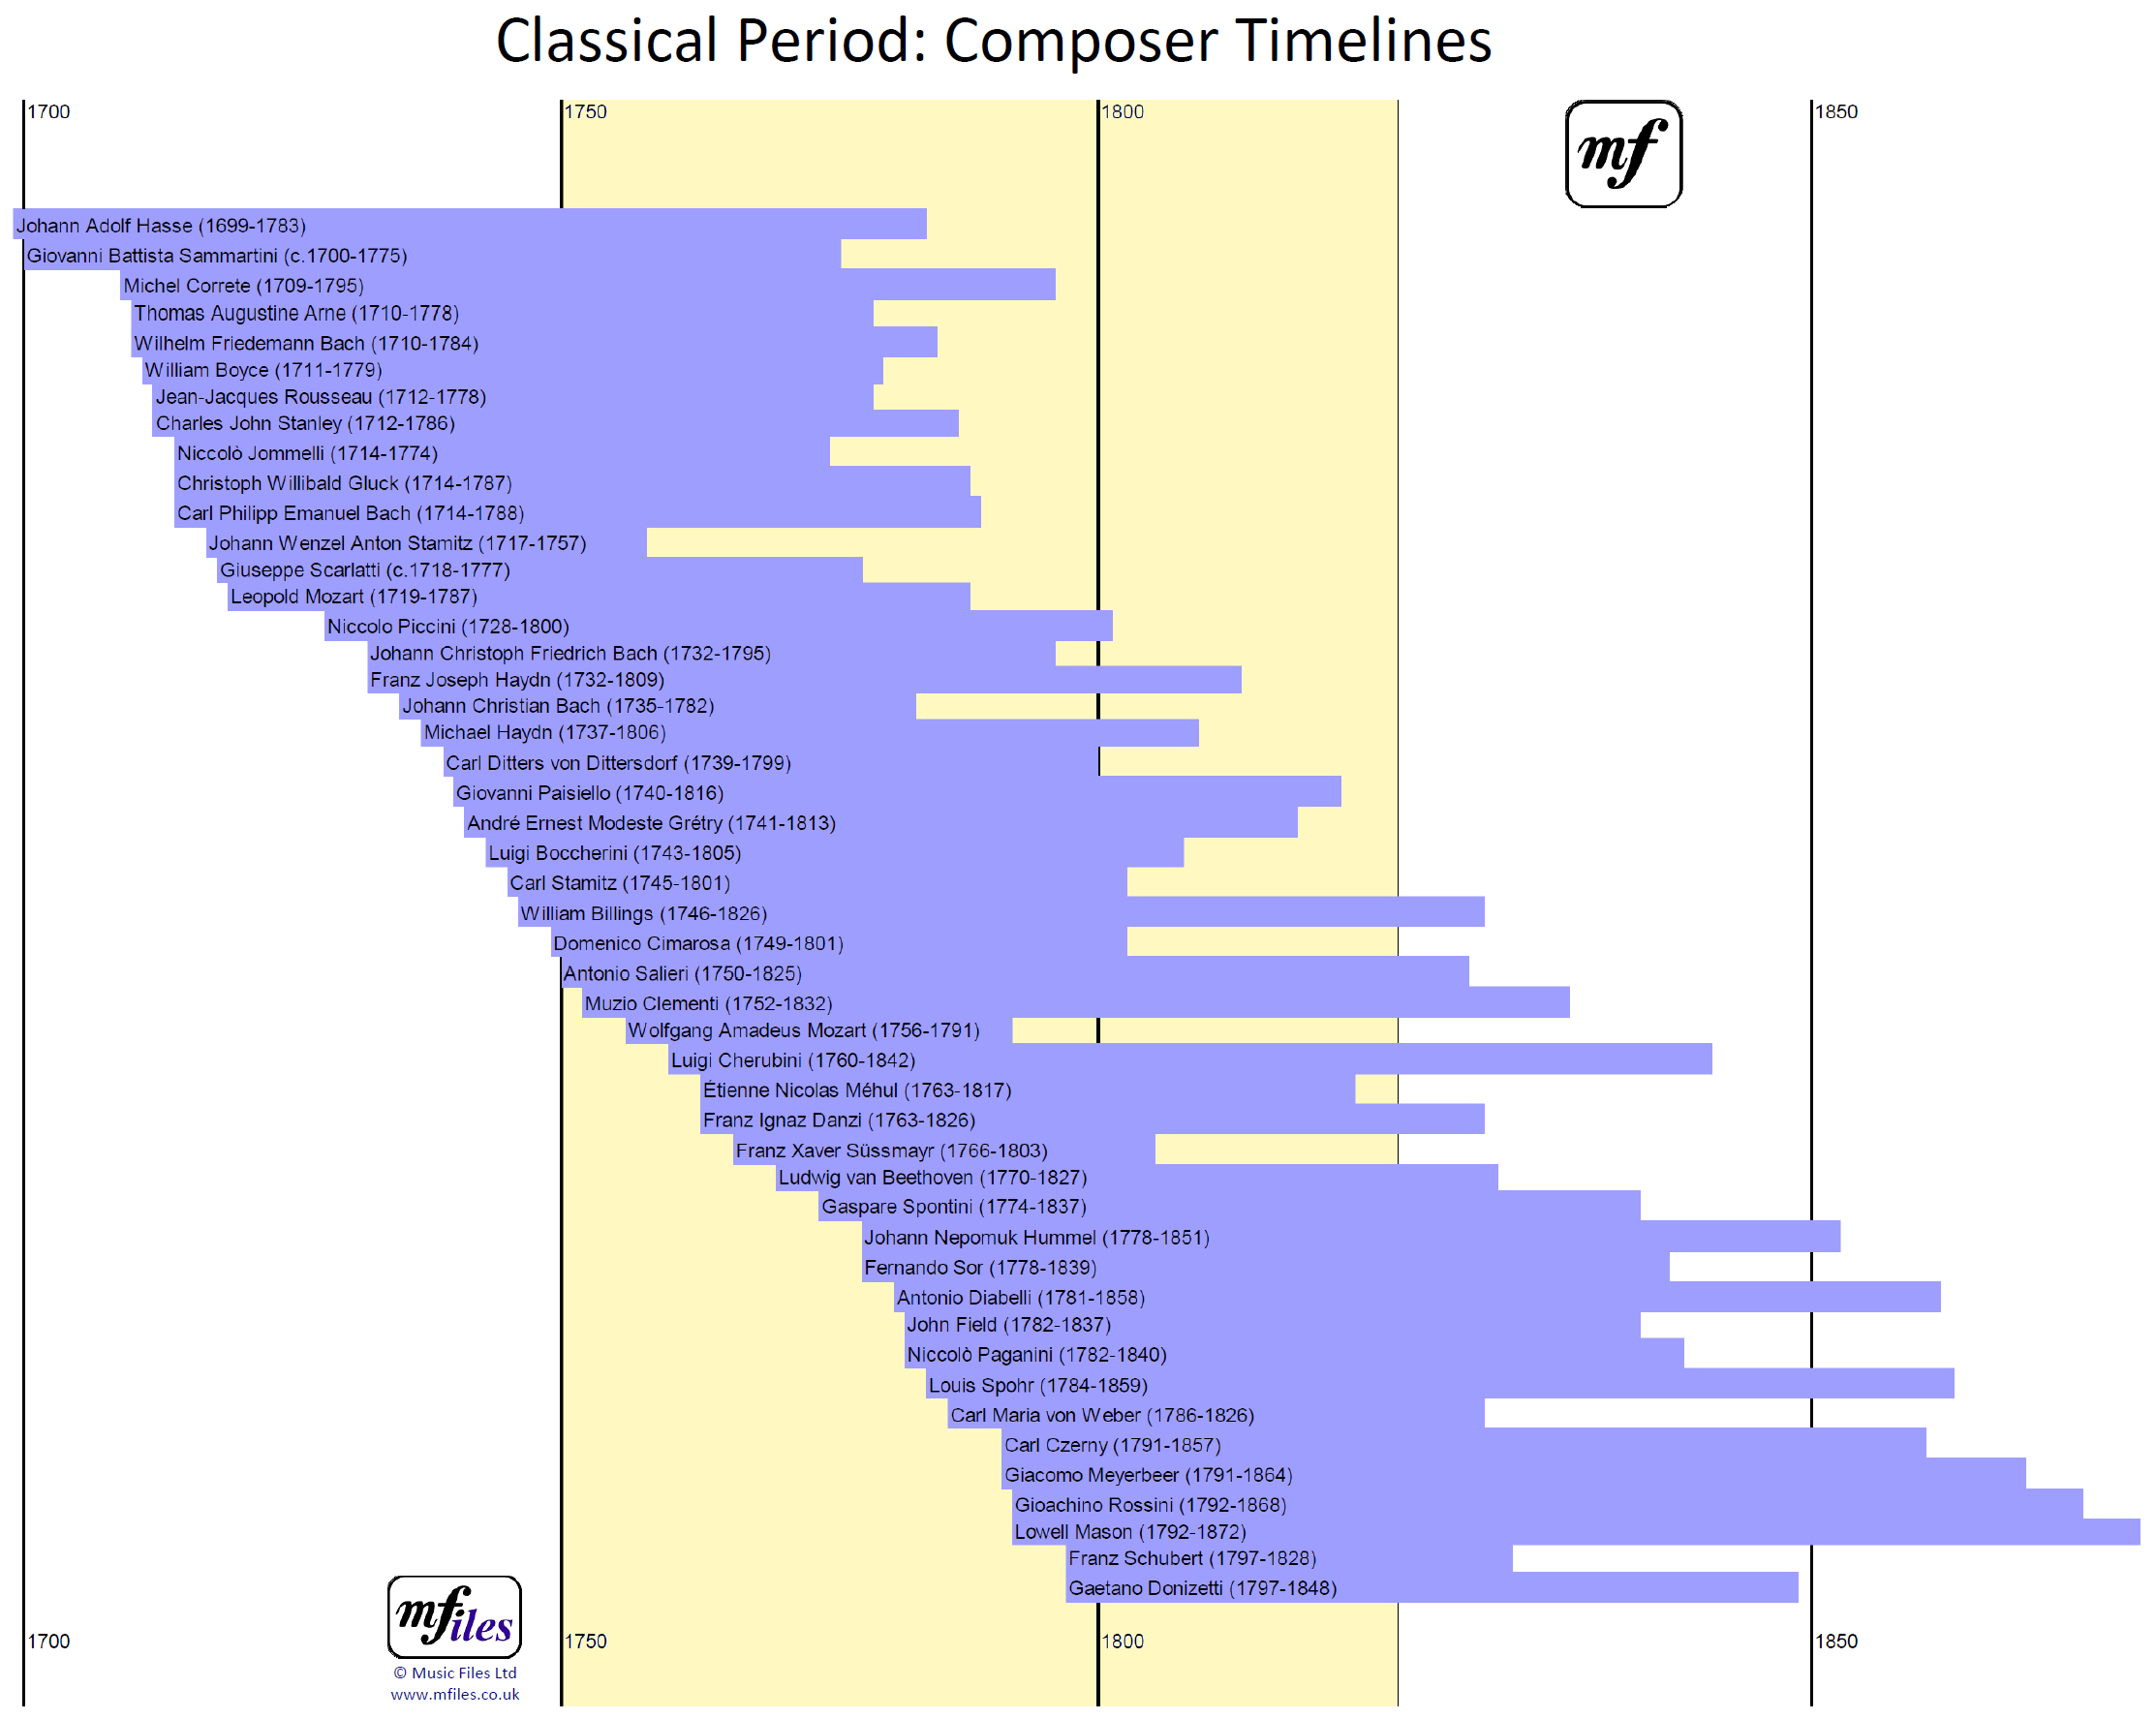 Timelines For Composers Of The Classical Period Approx